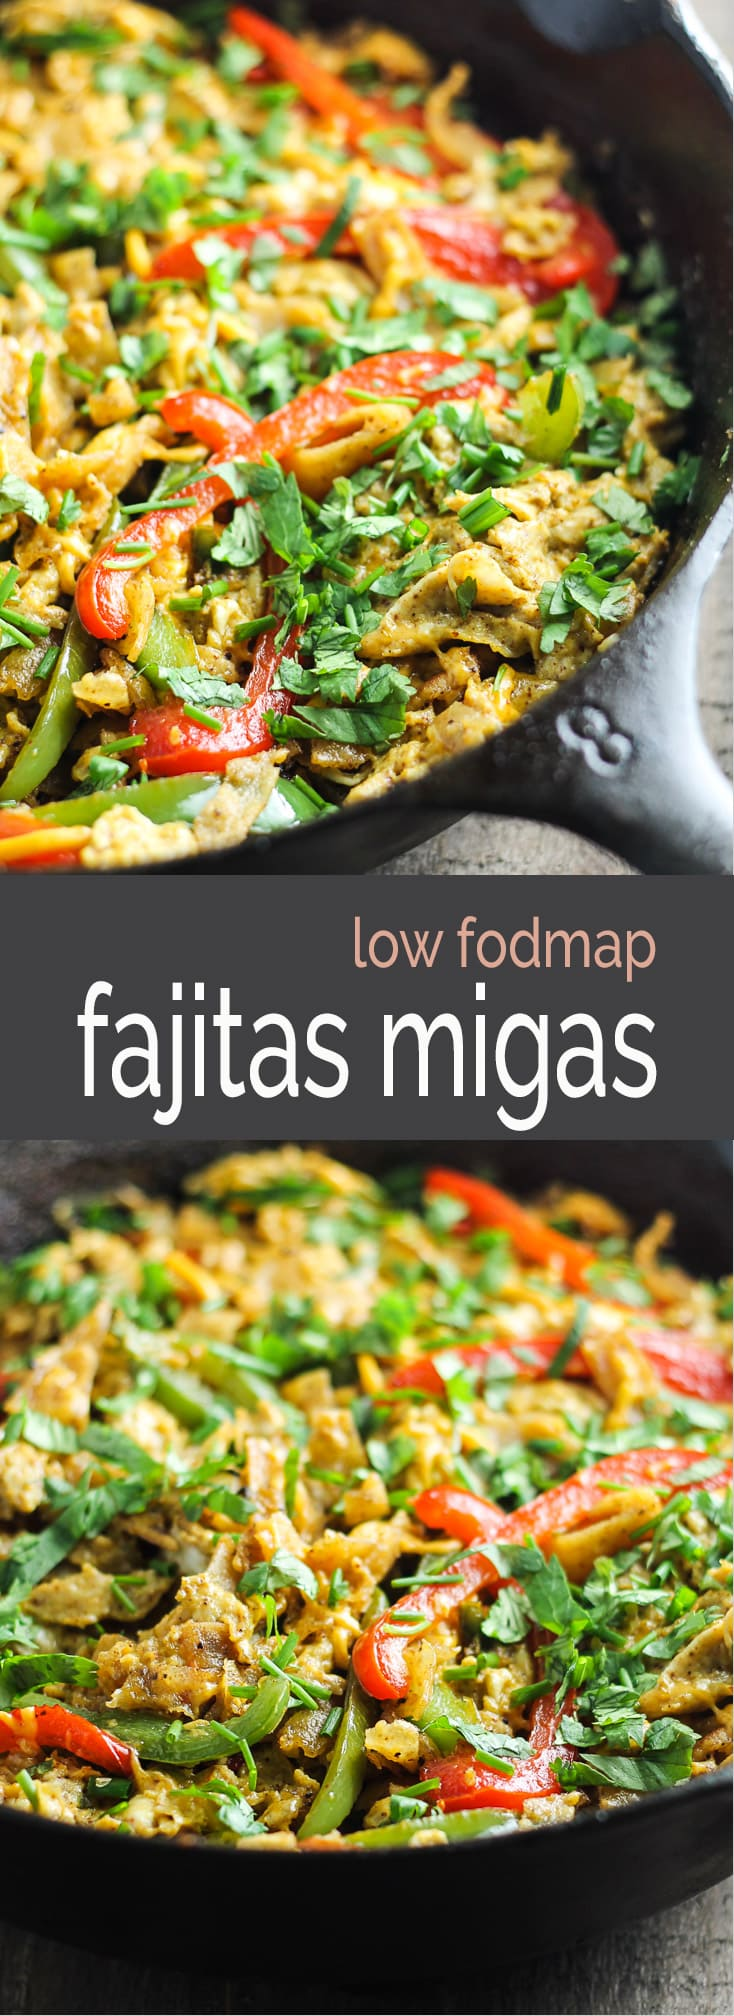 Try this Low Fodmap Fajita Migas recipe! It's filled with fresh flavors, crispy tortilla chips and CHEESE! Yum!